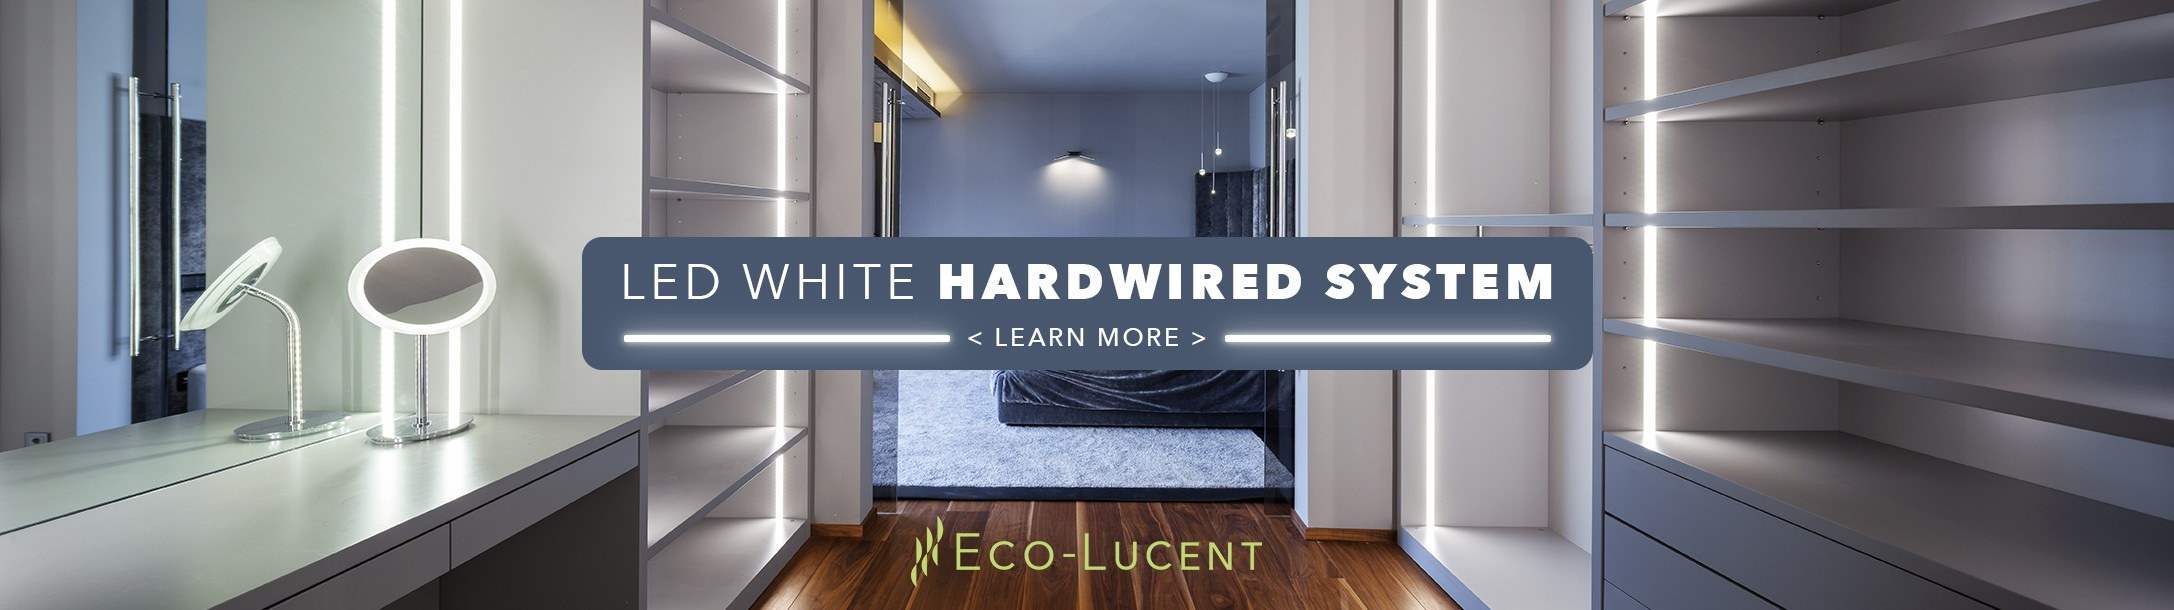 LED White Hardwired System